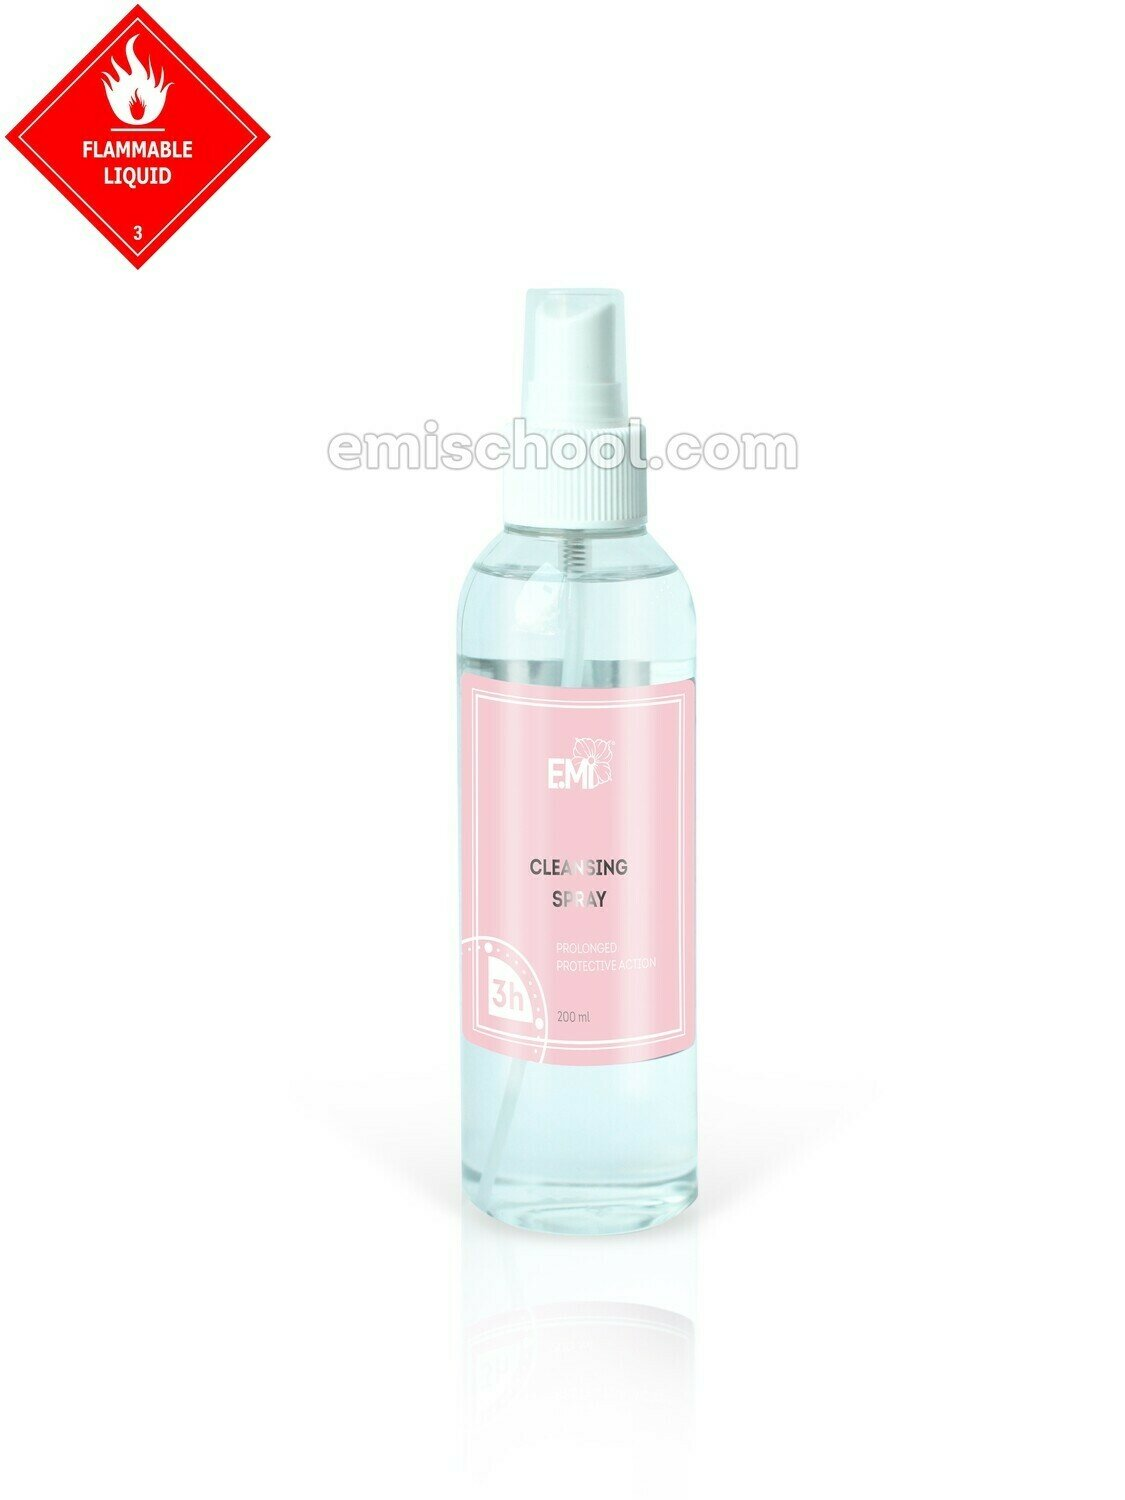 Cleansing Spray, 200 ml.